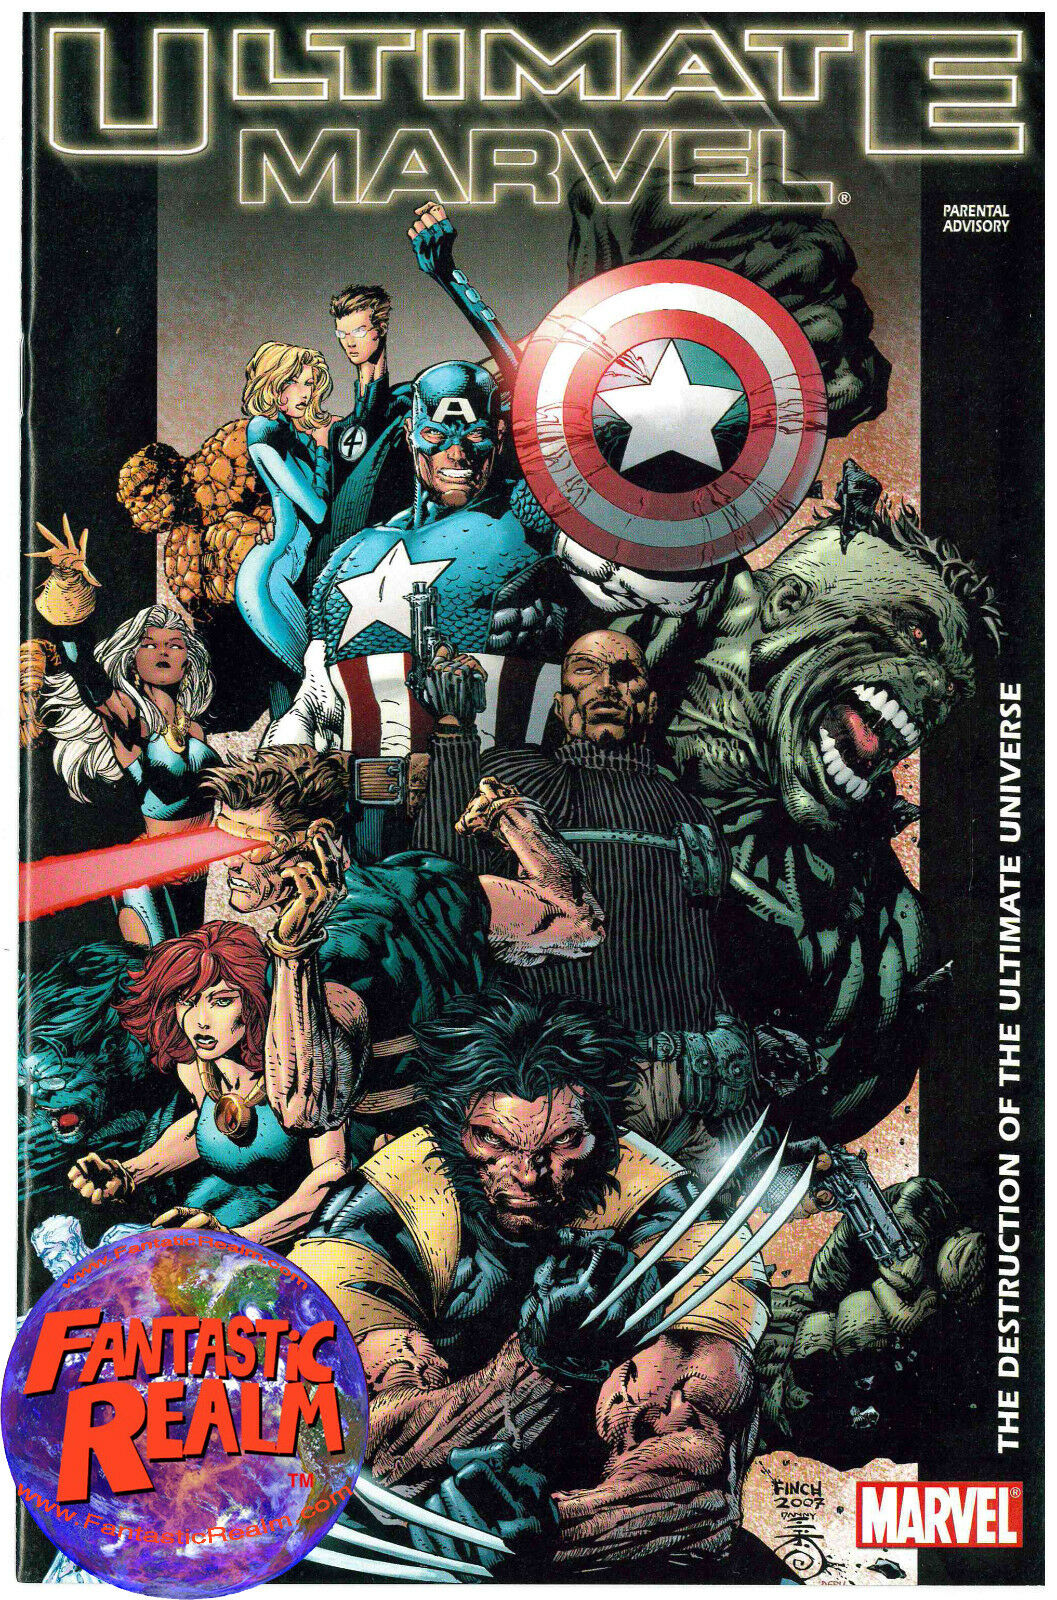 ULTIMATE MARVEL SAMPLER (2007) MARVEL COMICS